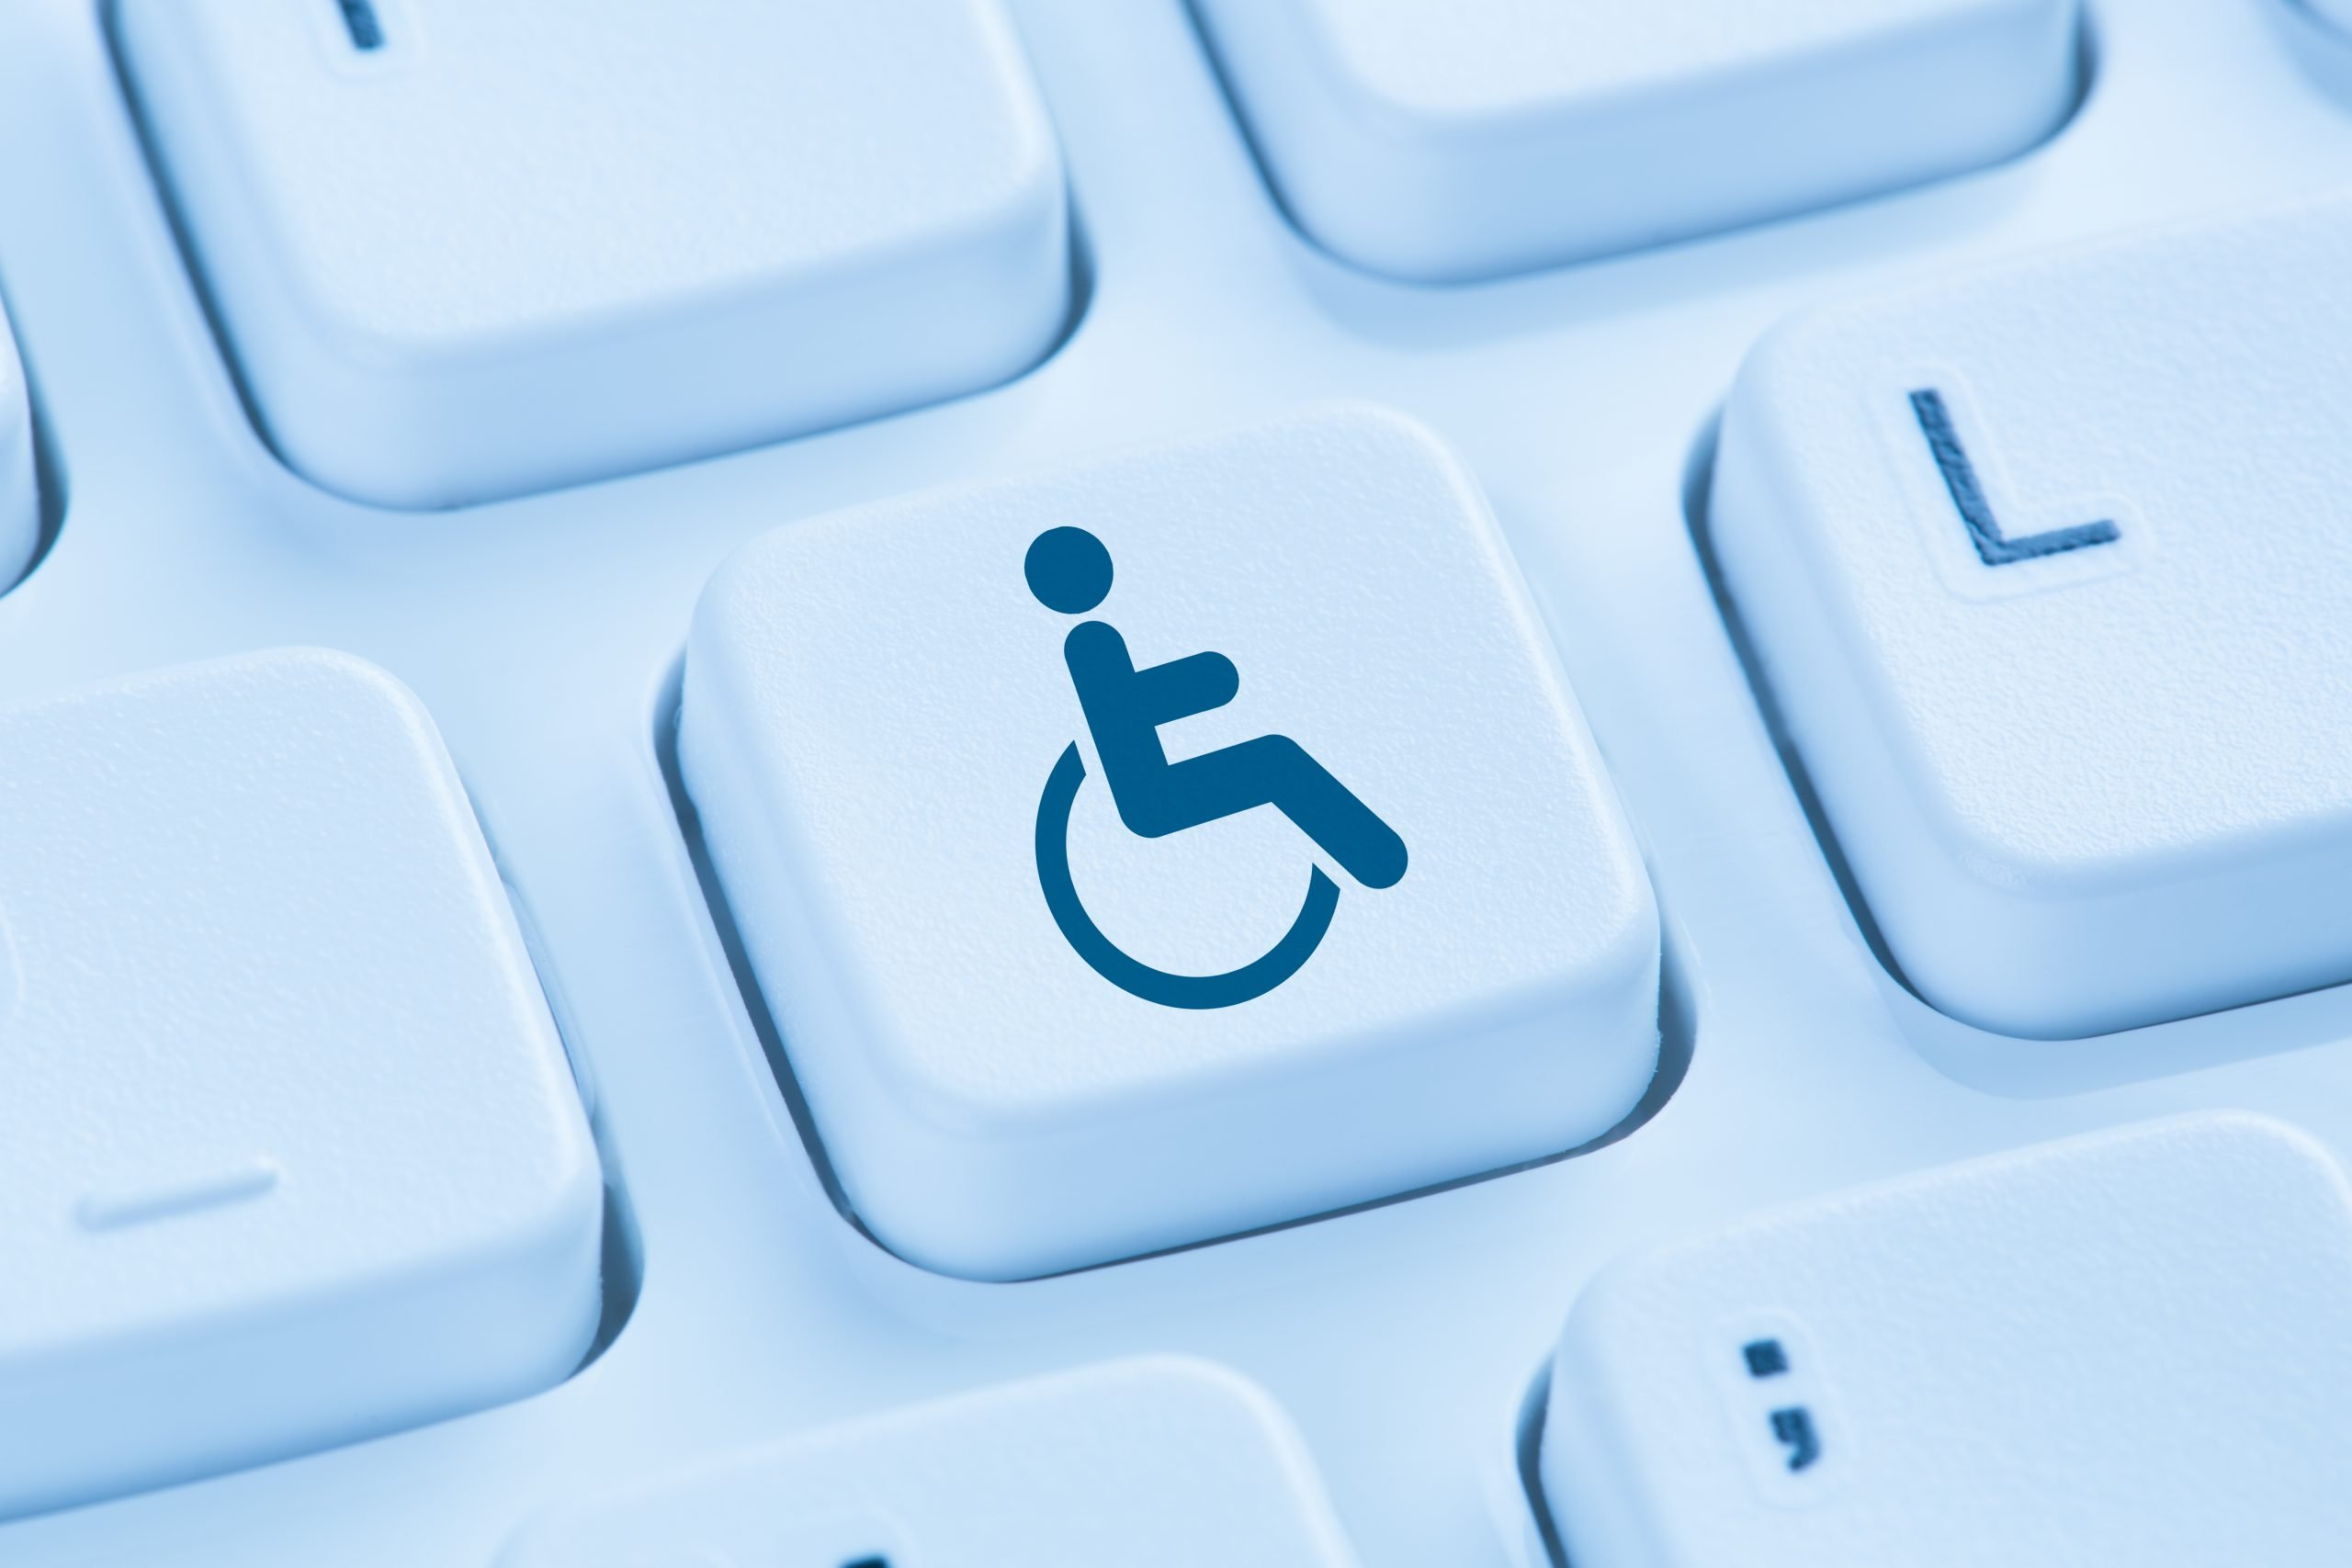 WCAG Guidelines: How Important Are the New Website Content Accessibility Guidelines?